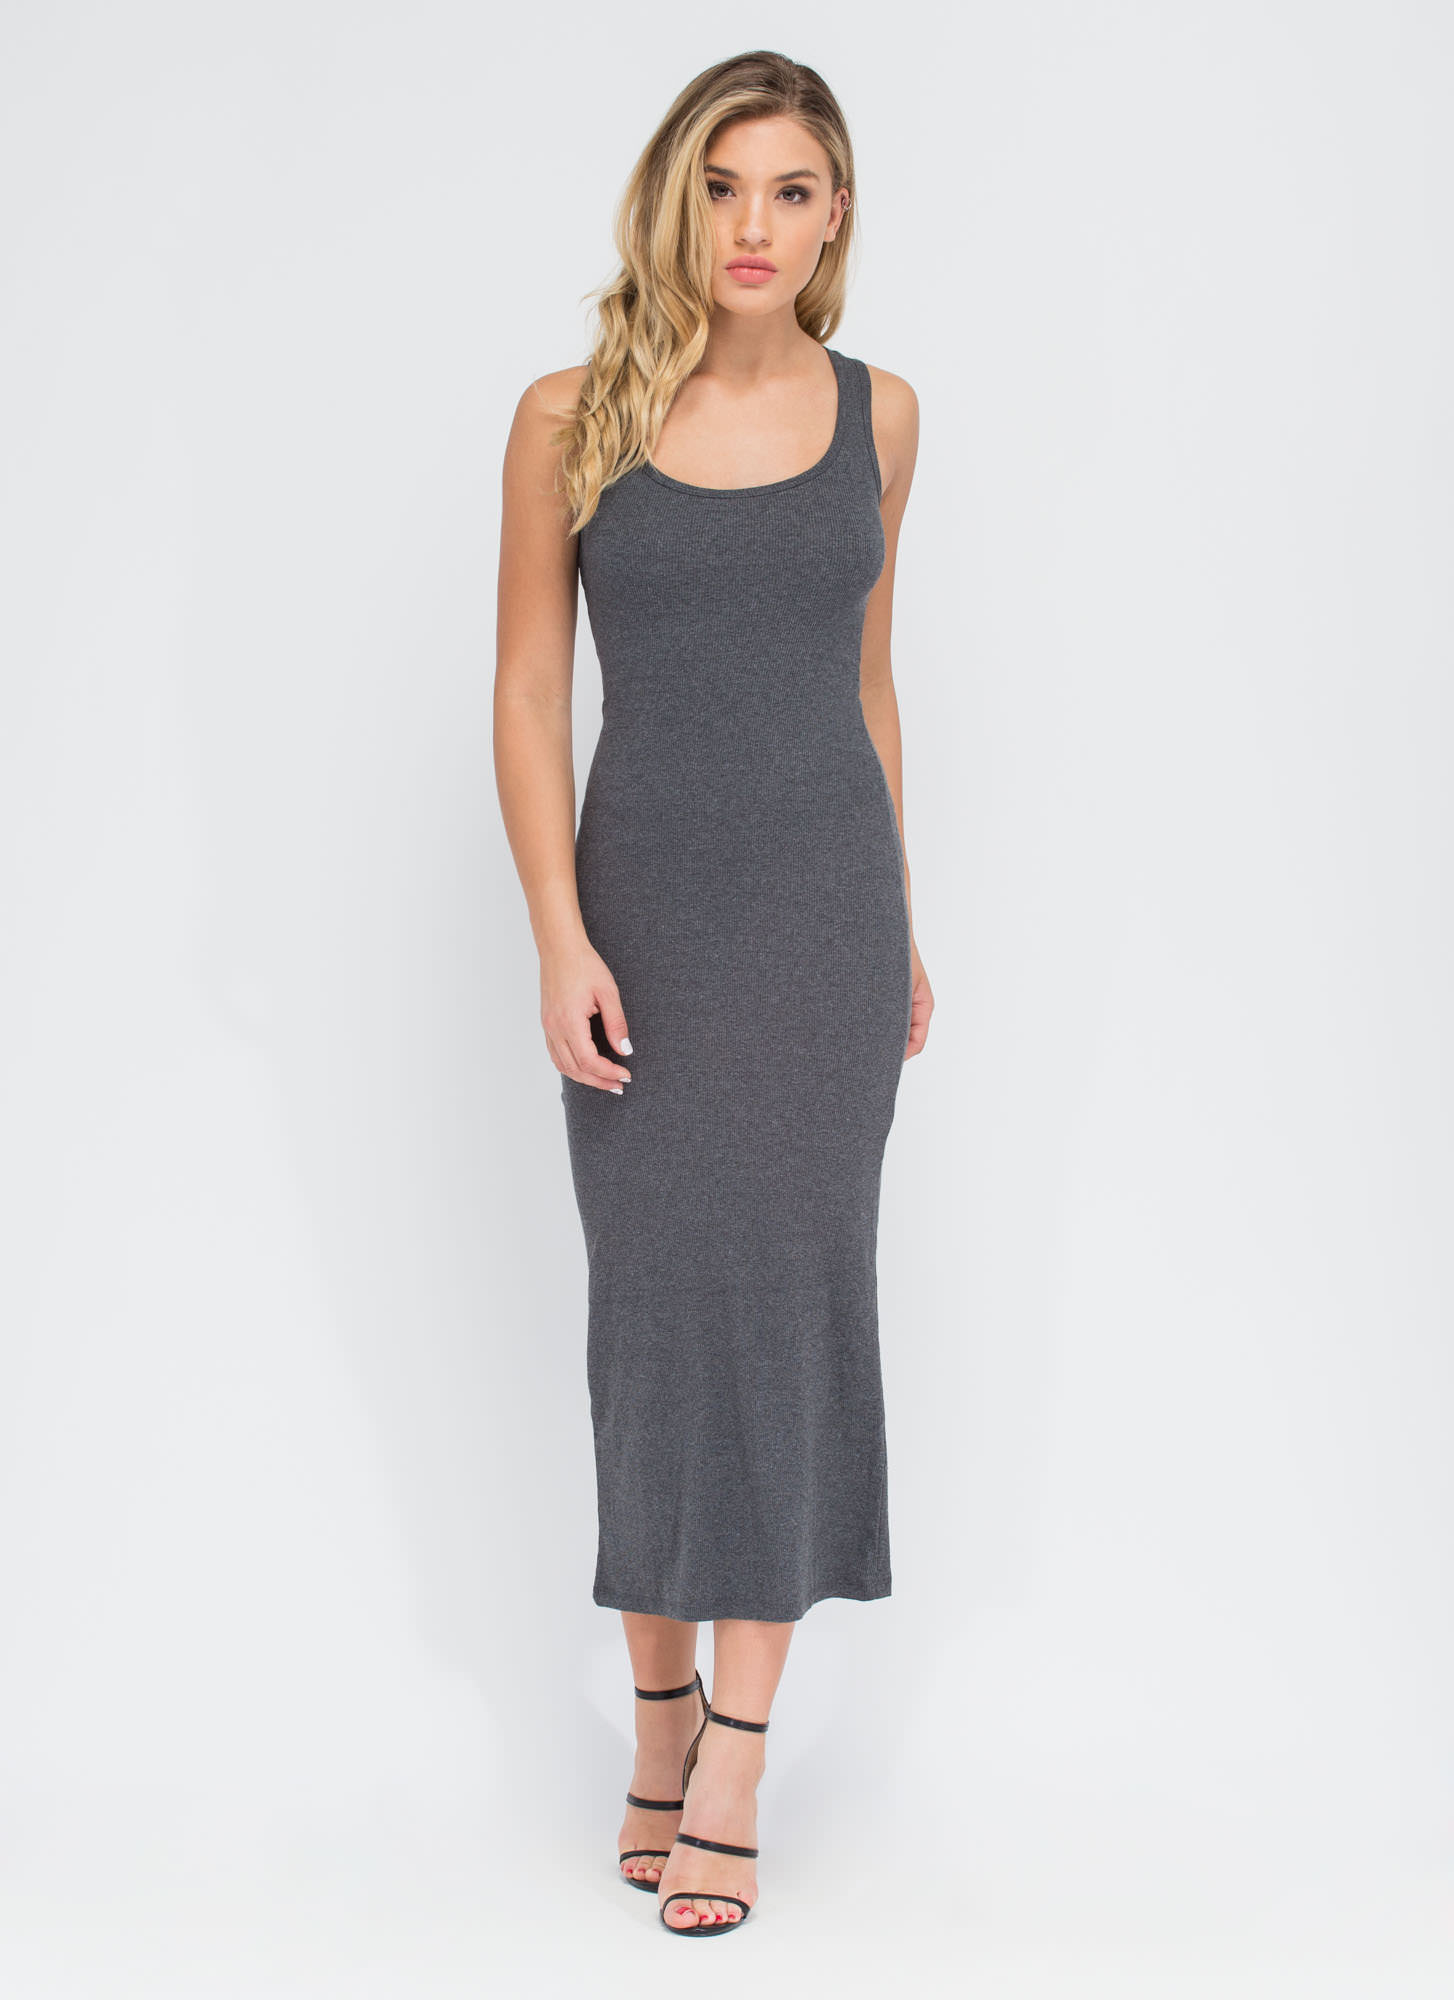 Bring On The Basic Ribbed Maxi Dress HGREY